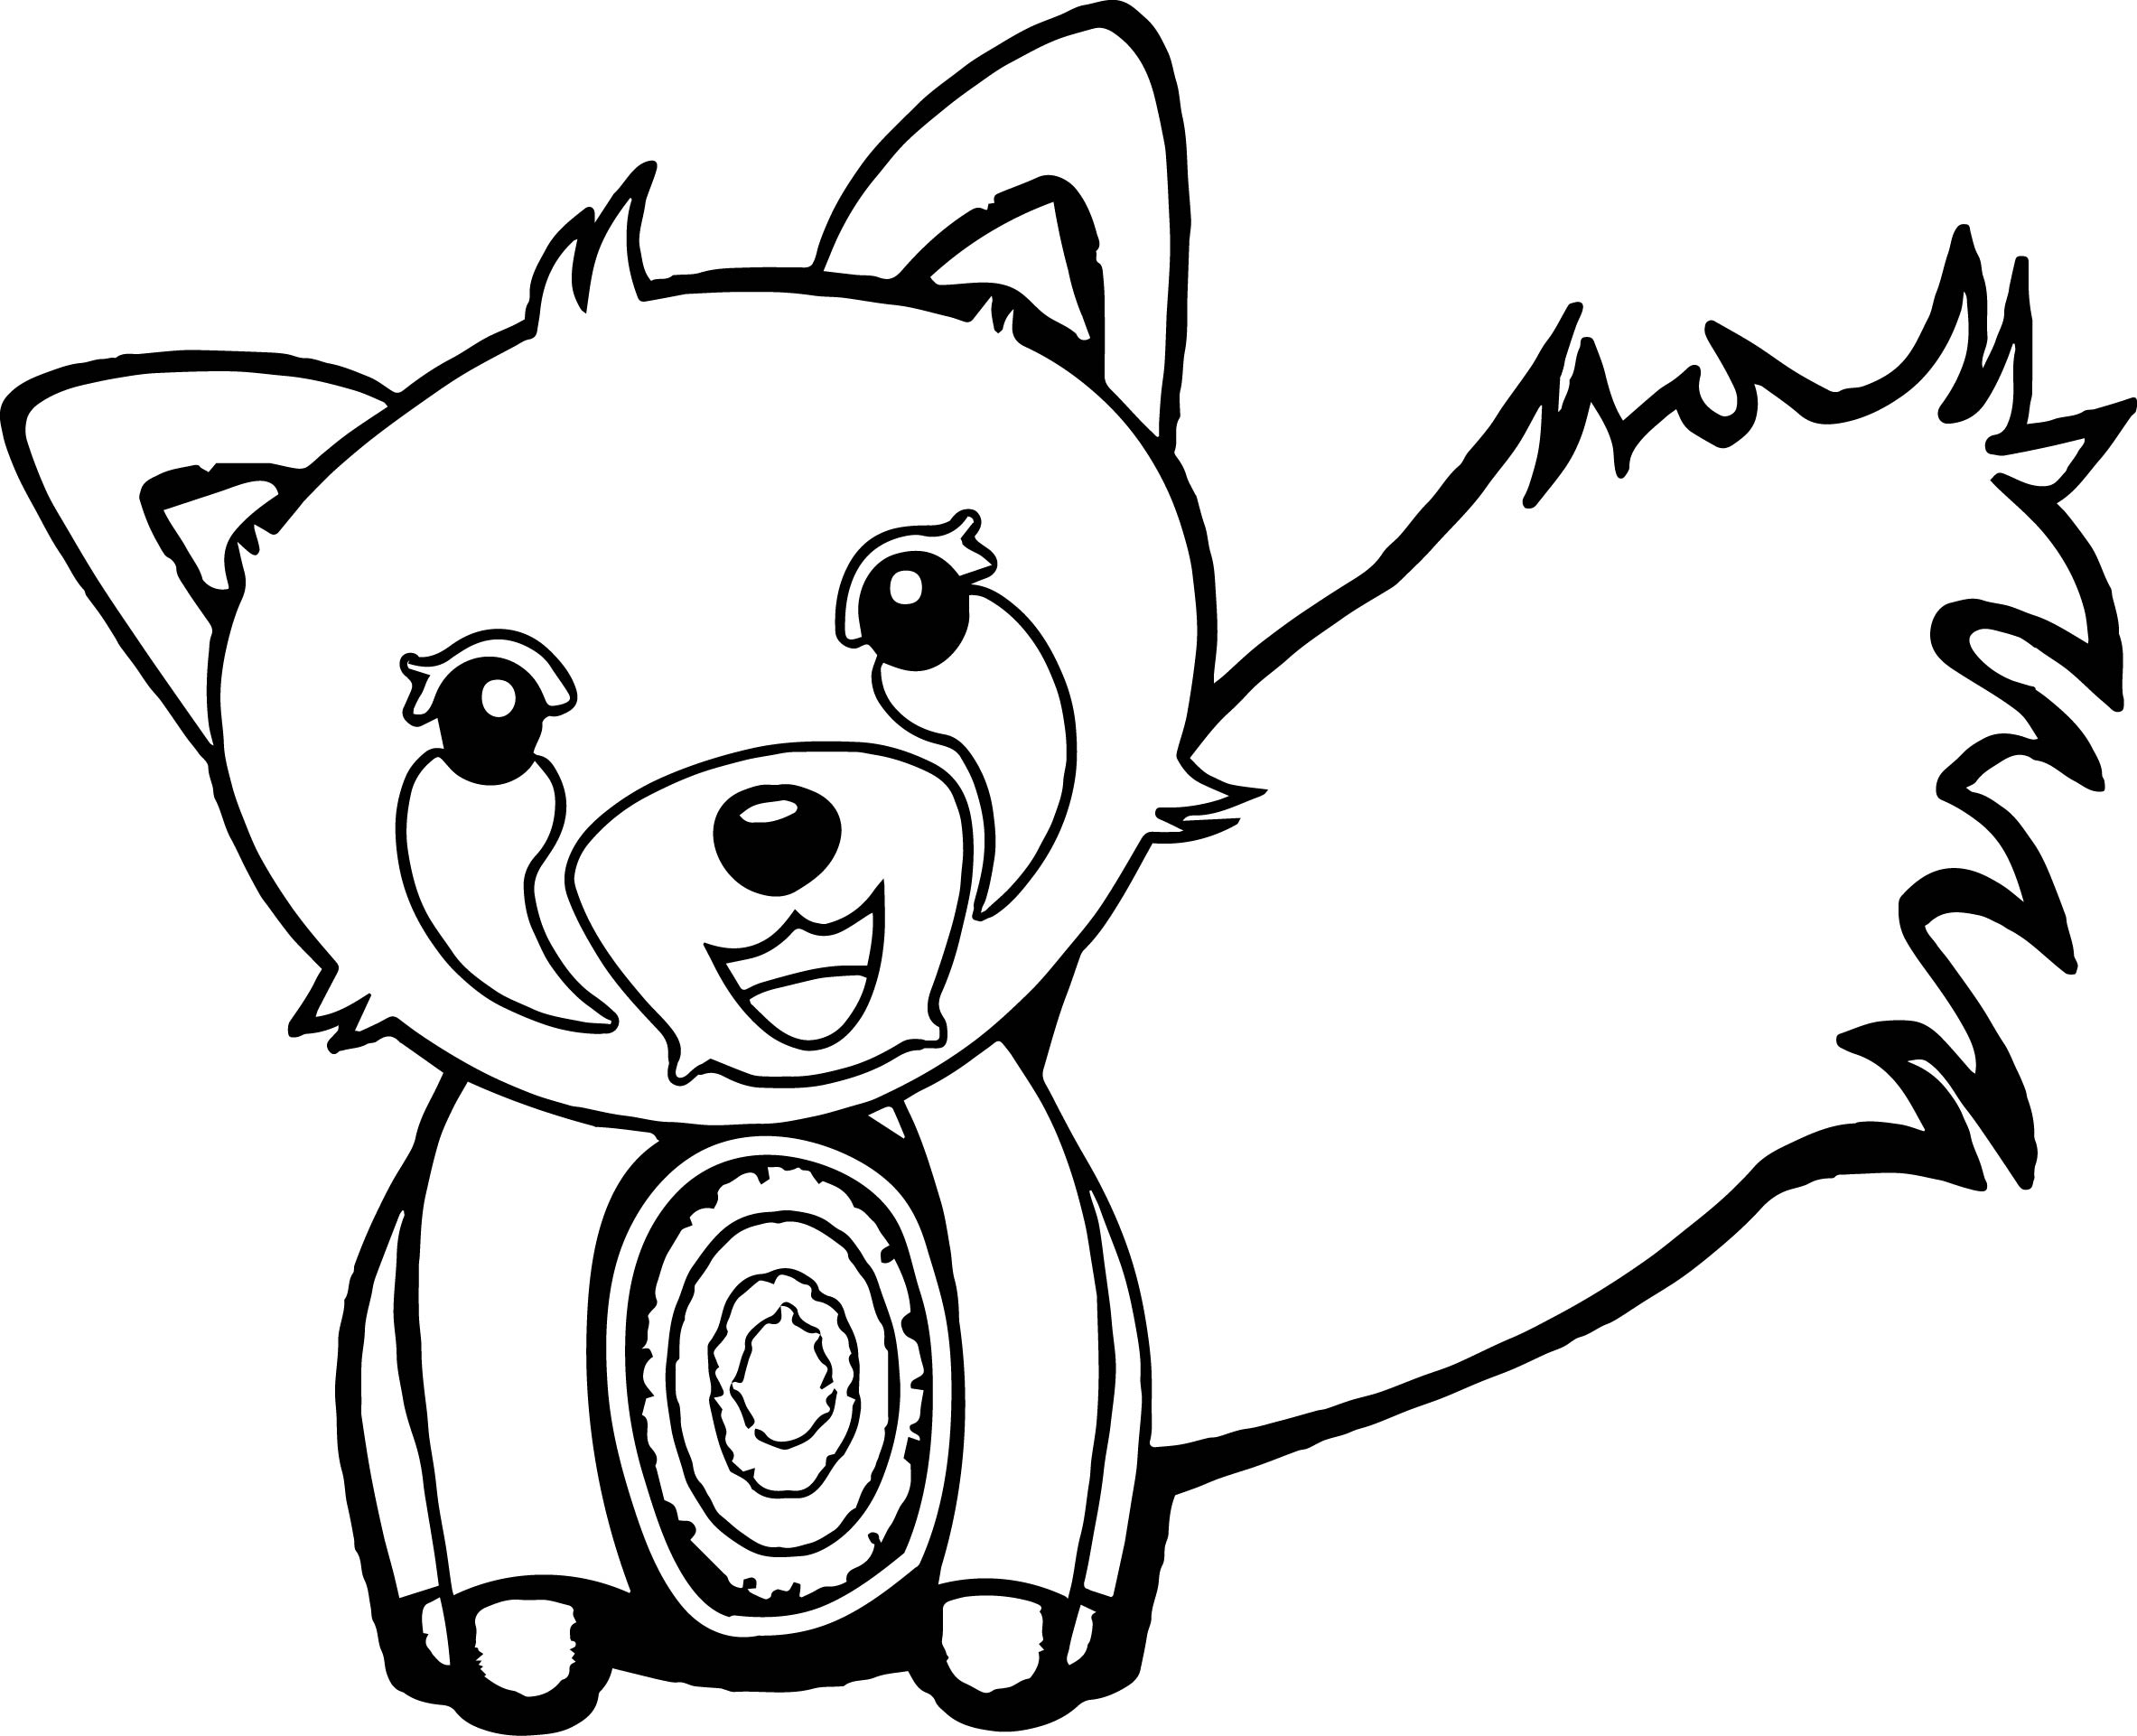 Zoo Fox Cartoon Coloring Page